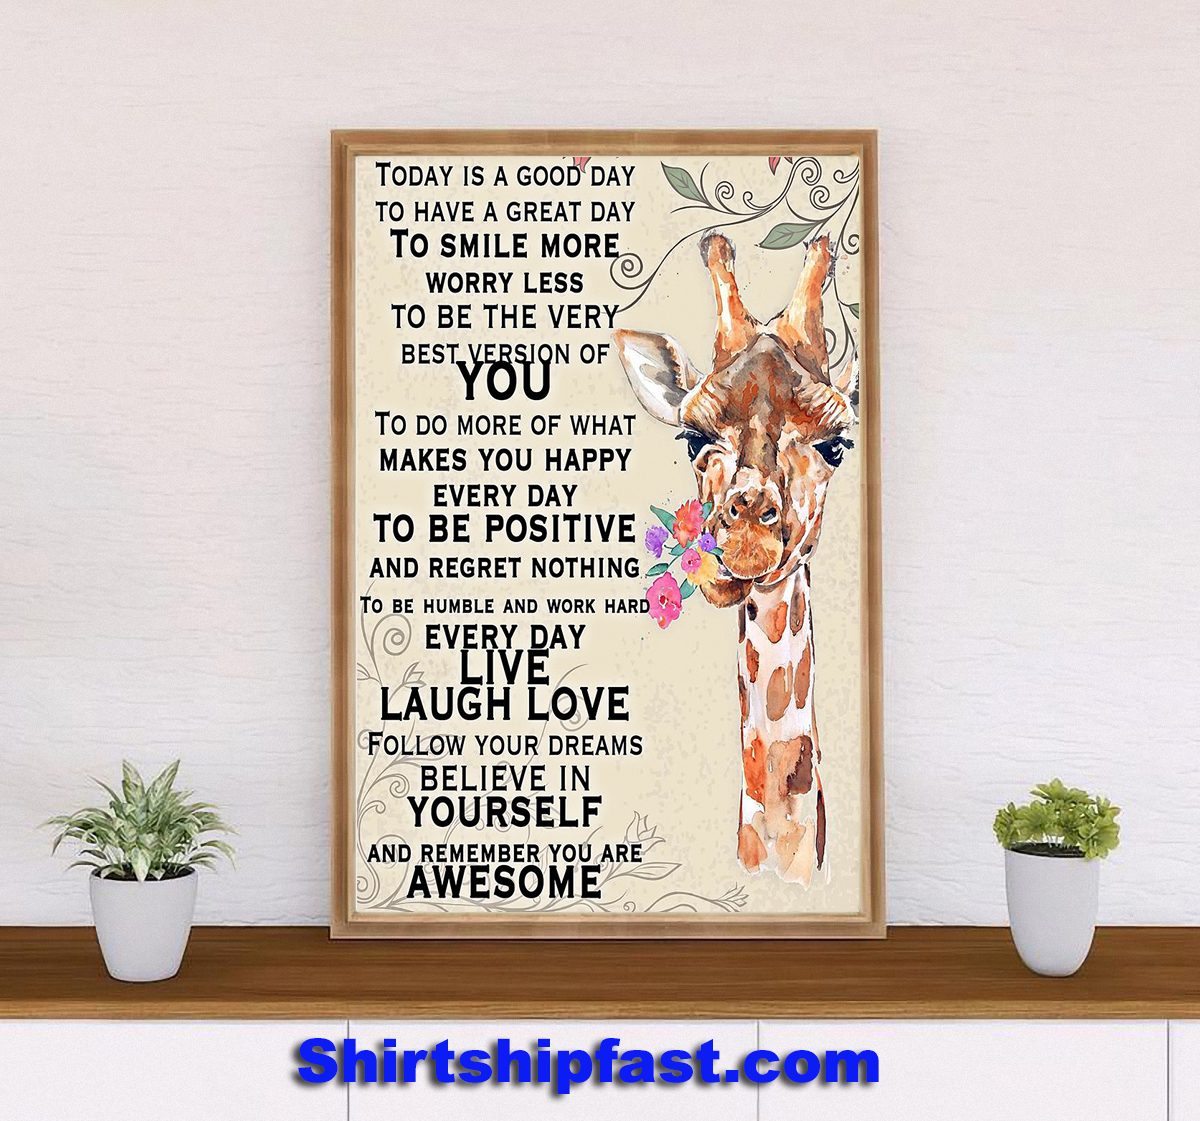 Giraffe today is a good day to have a great day poster